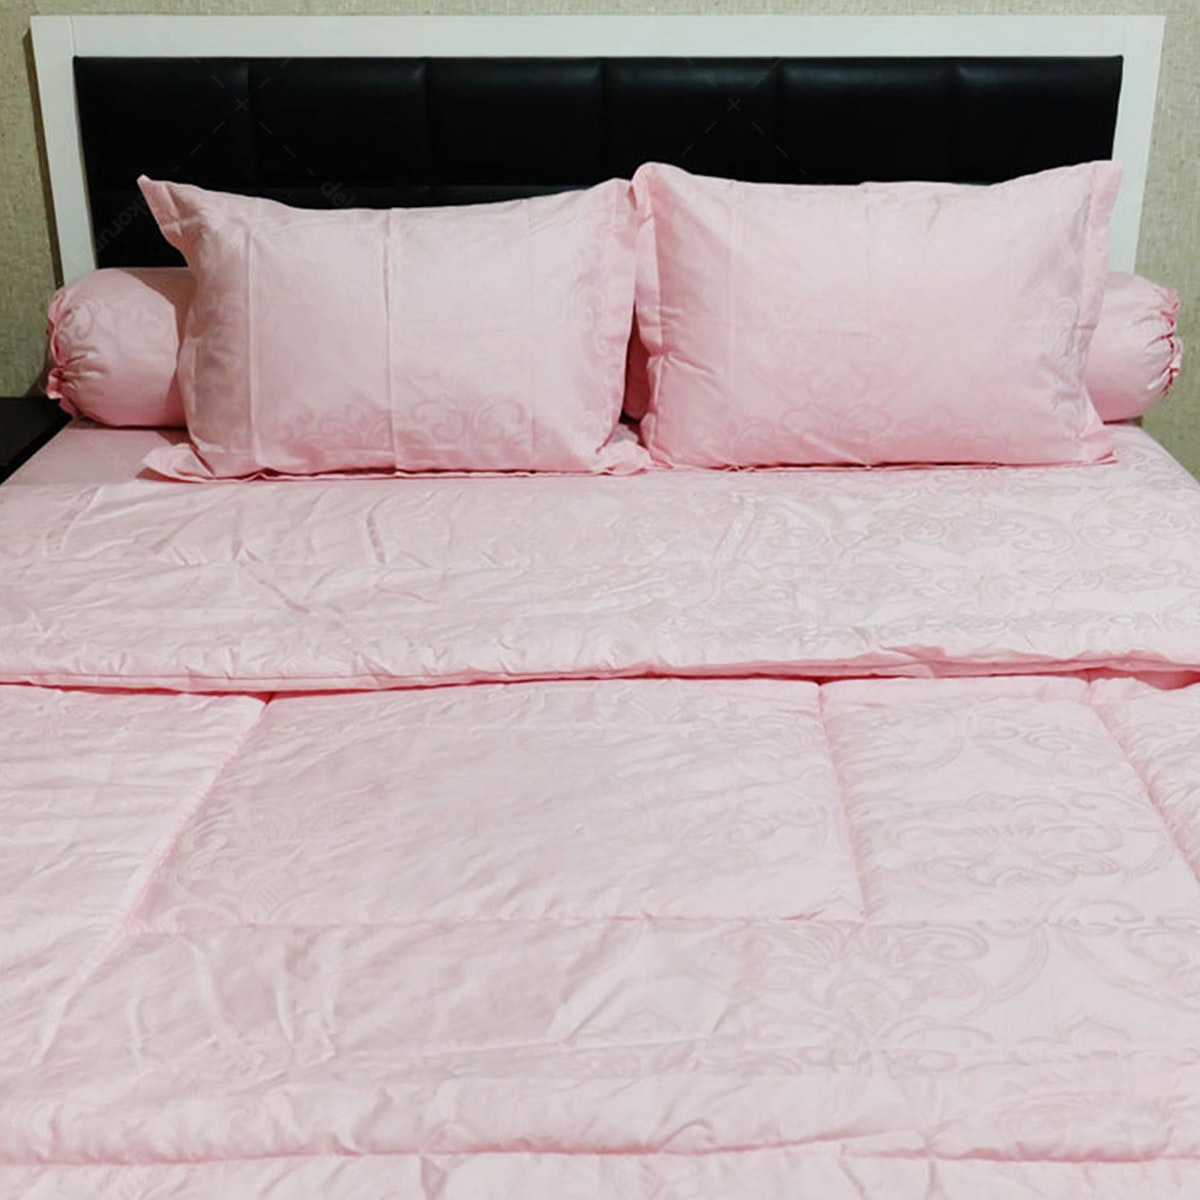 Sleep Buddy Set Sprei Dan Bed Cover Pink Victorian Jacquard Cotton 200x200x30